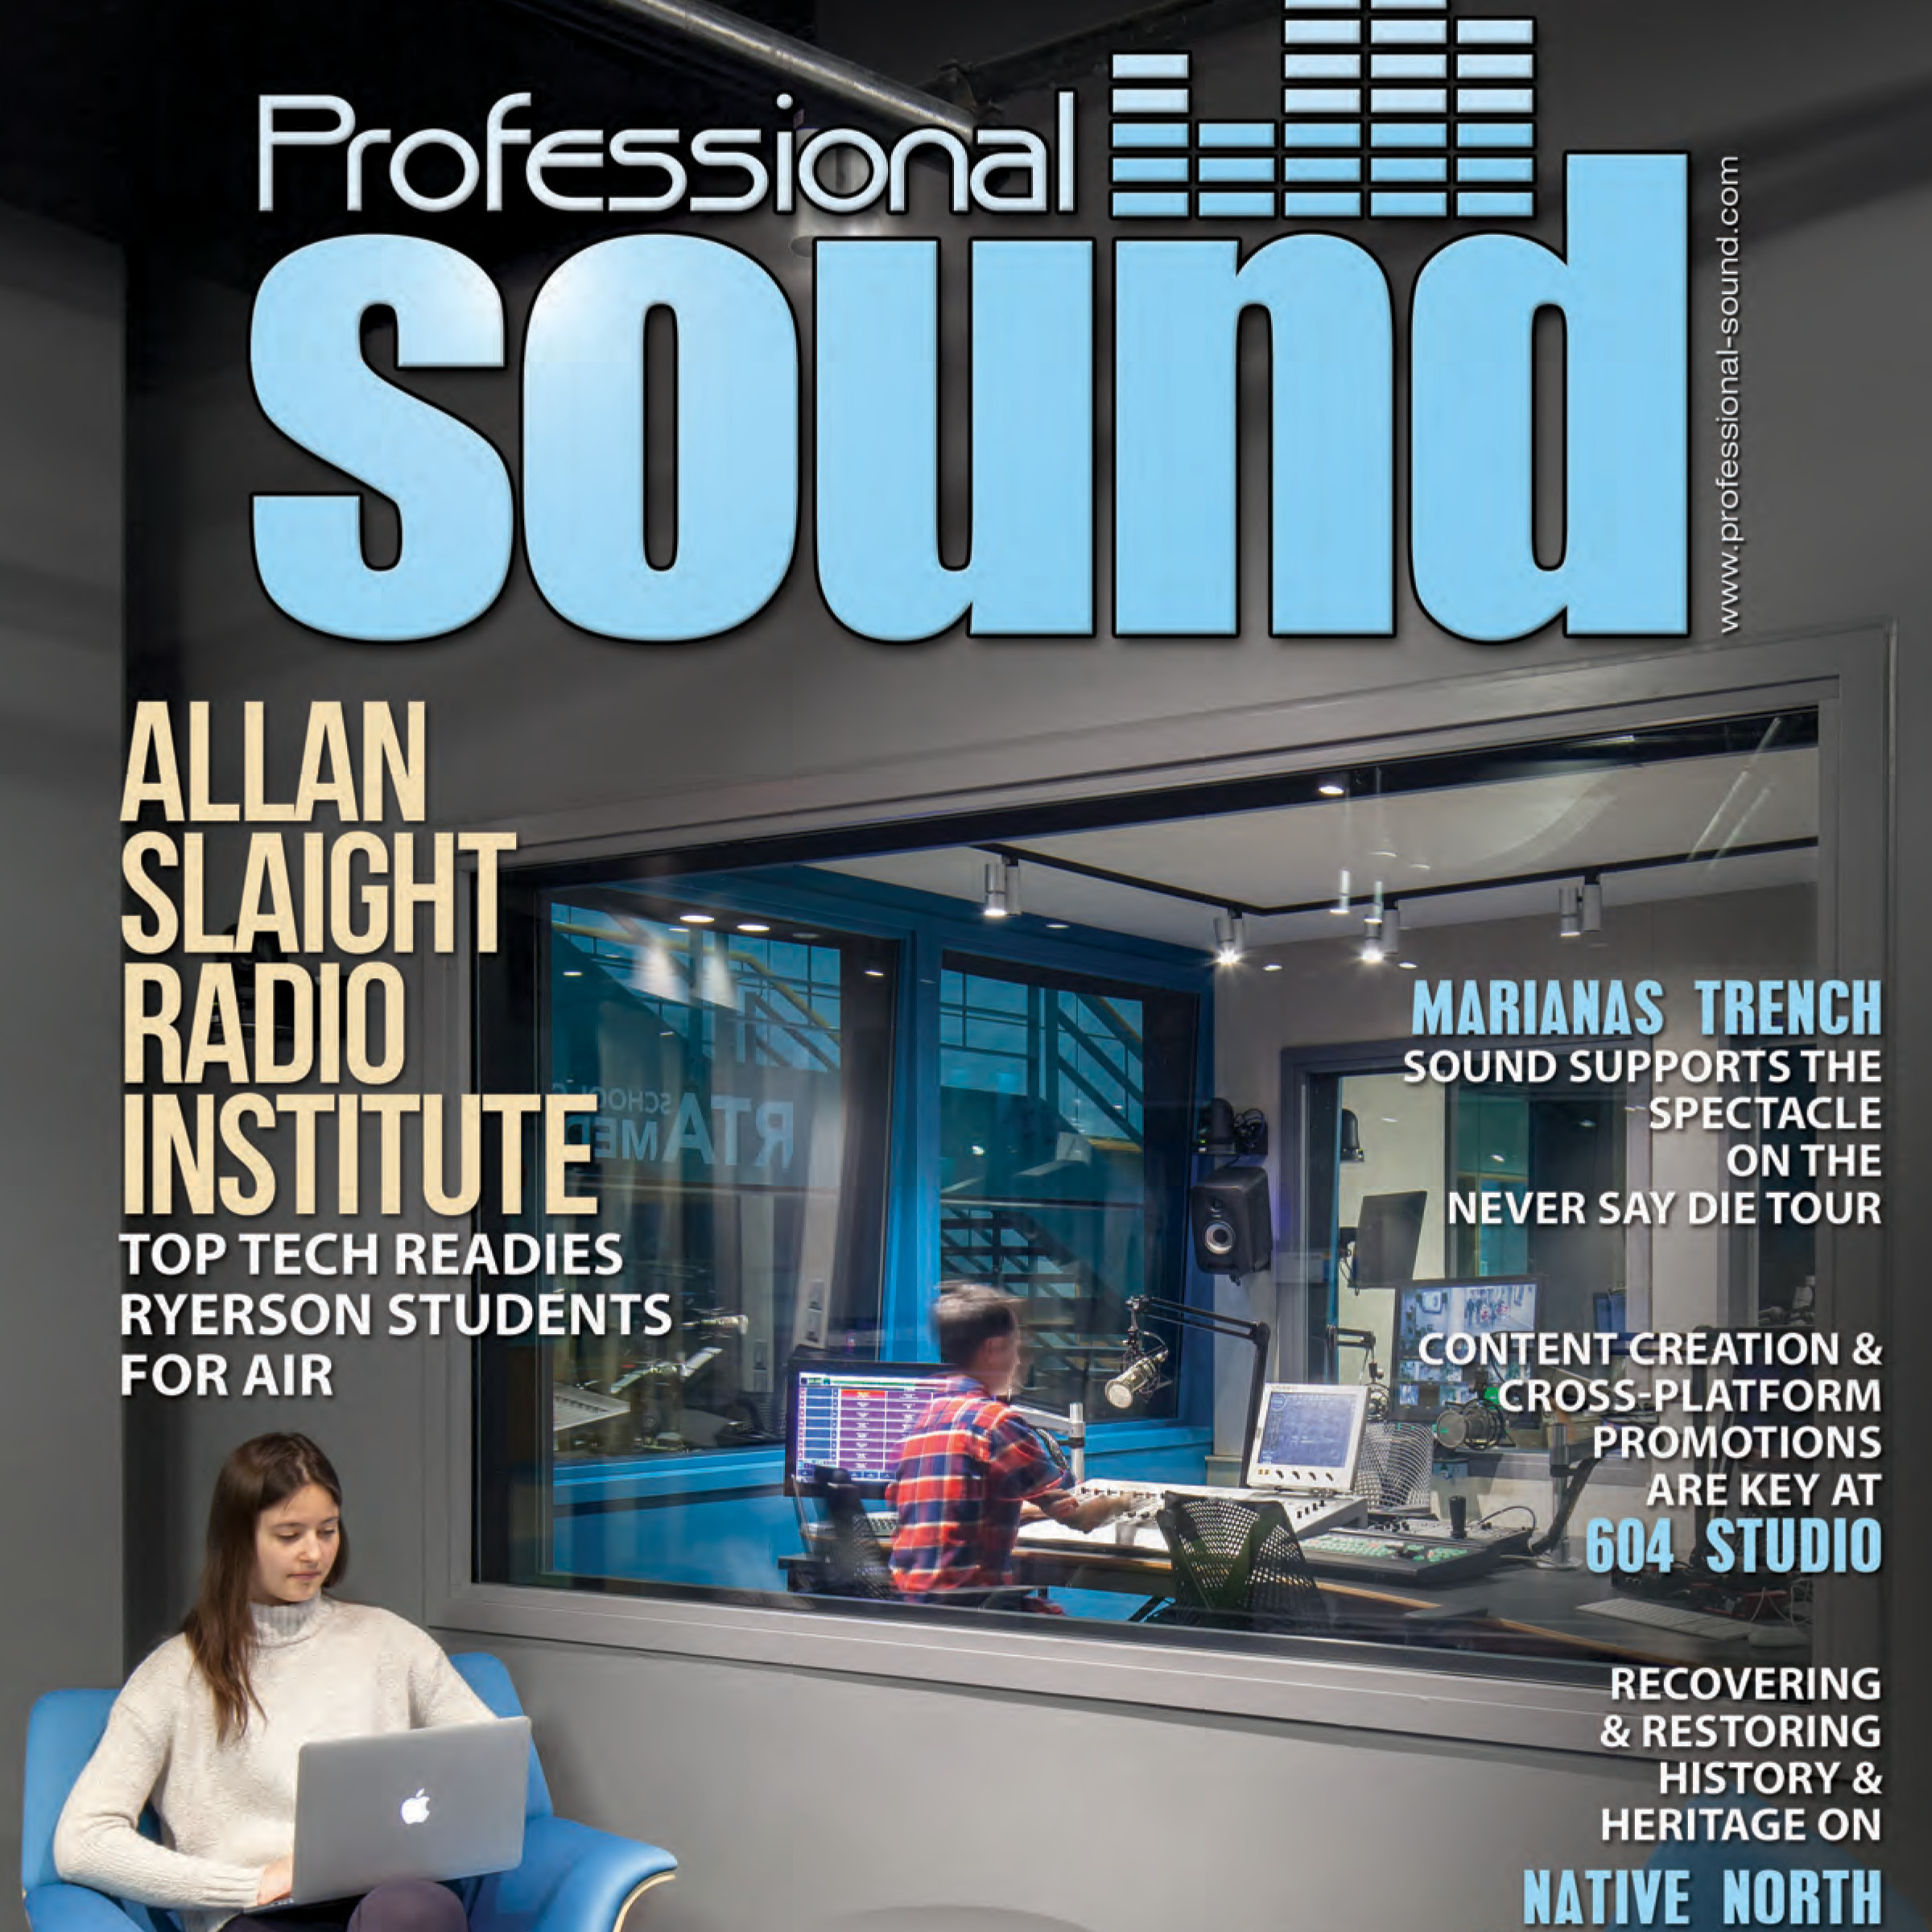 cover of Professional Sound magazine showing a recording booth at the Allan Slaight Radio Institute